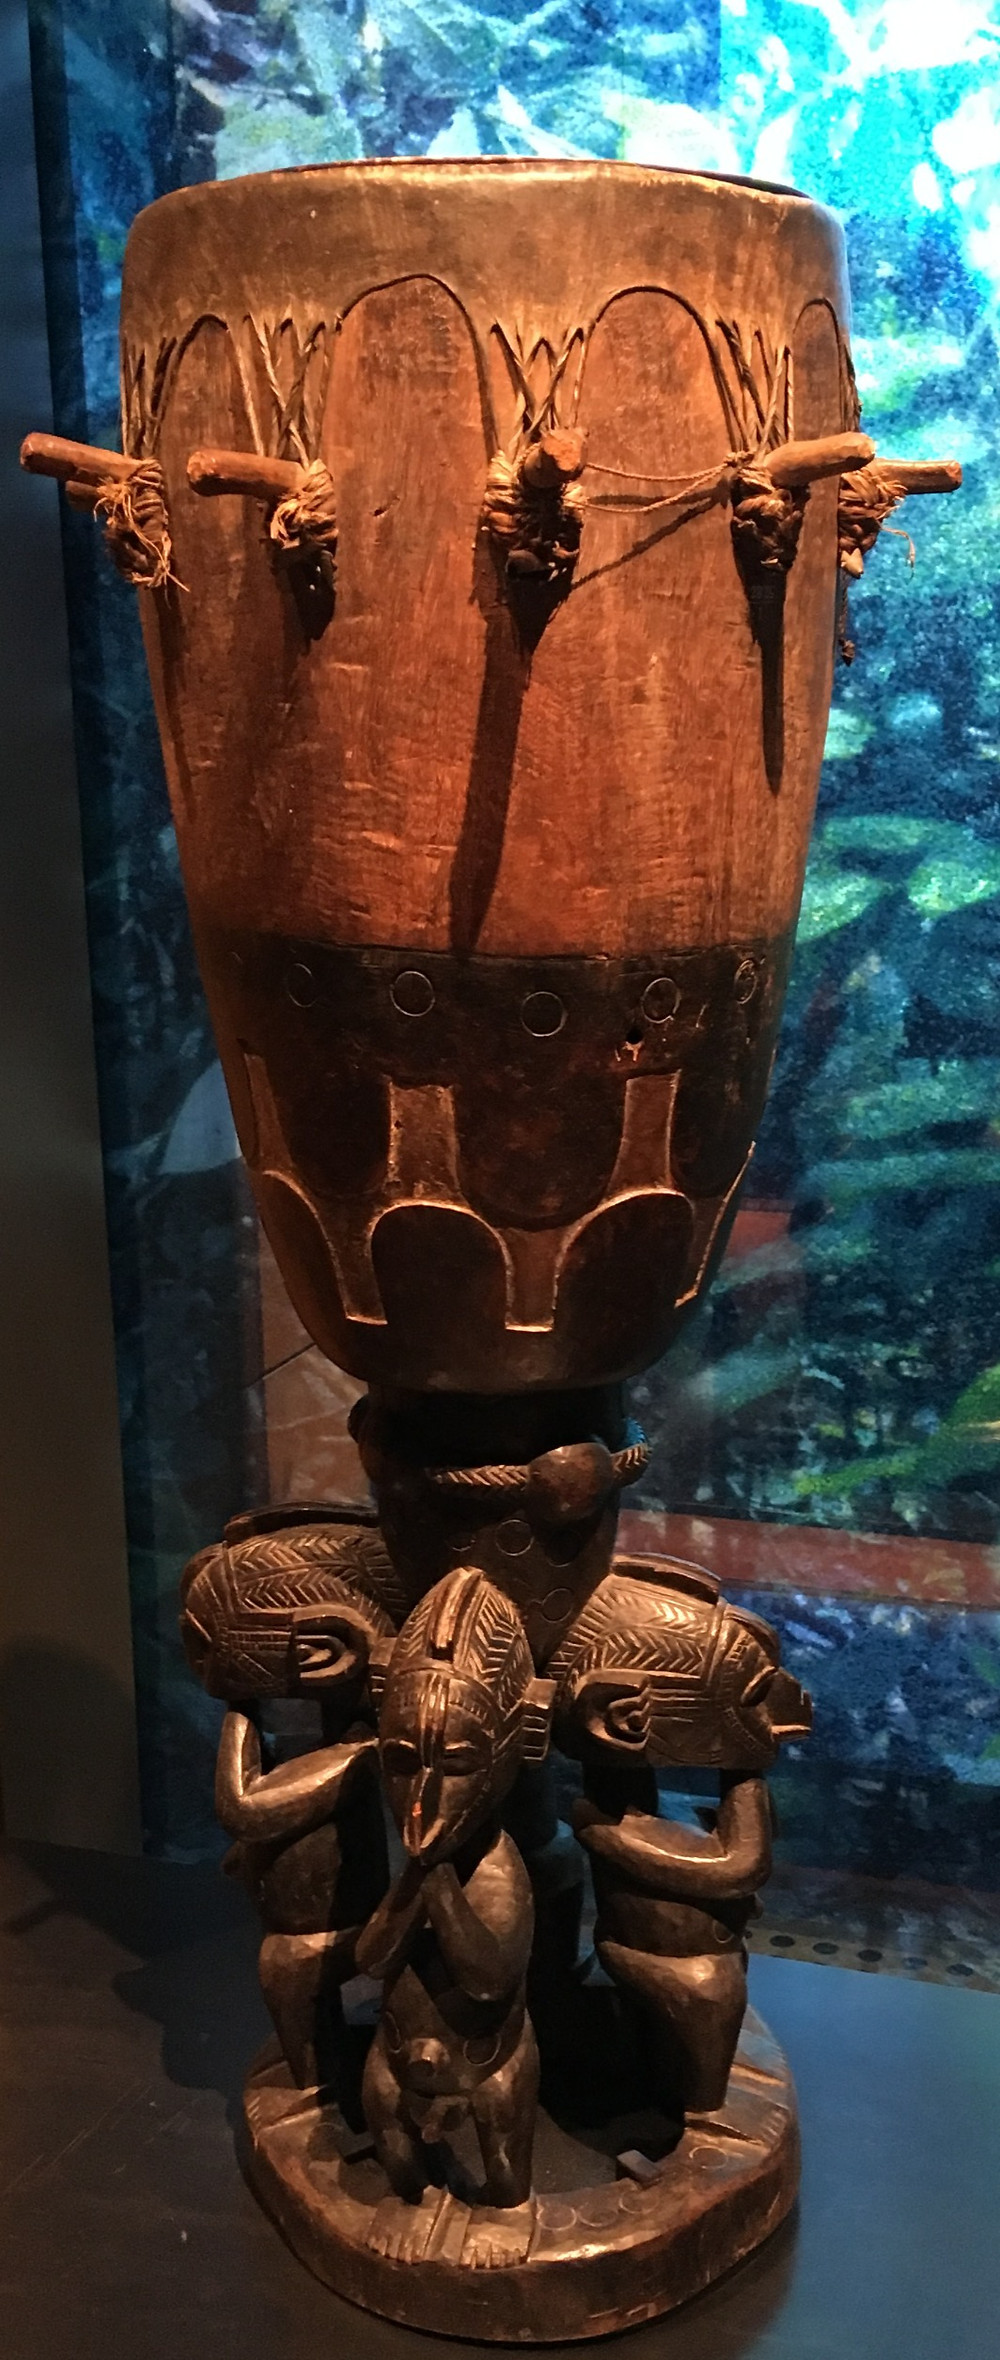 Timba drum of the Baga population in Guinea at the Quai Branly Museum